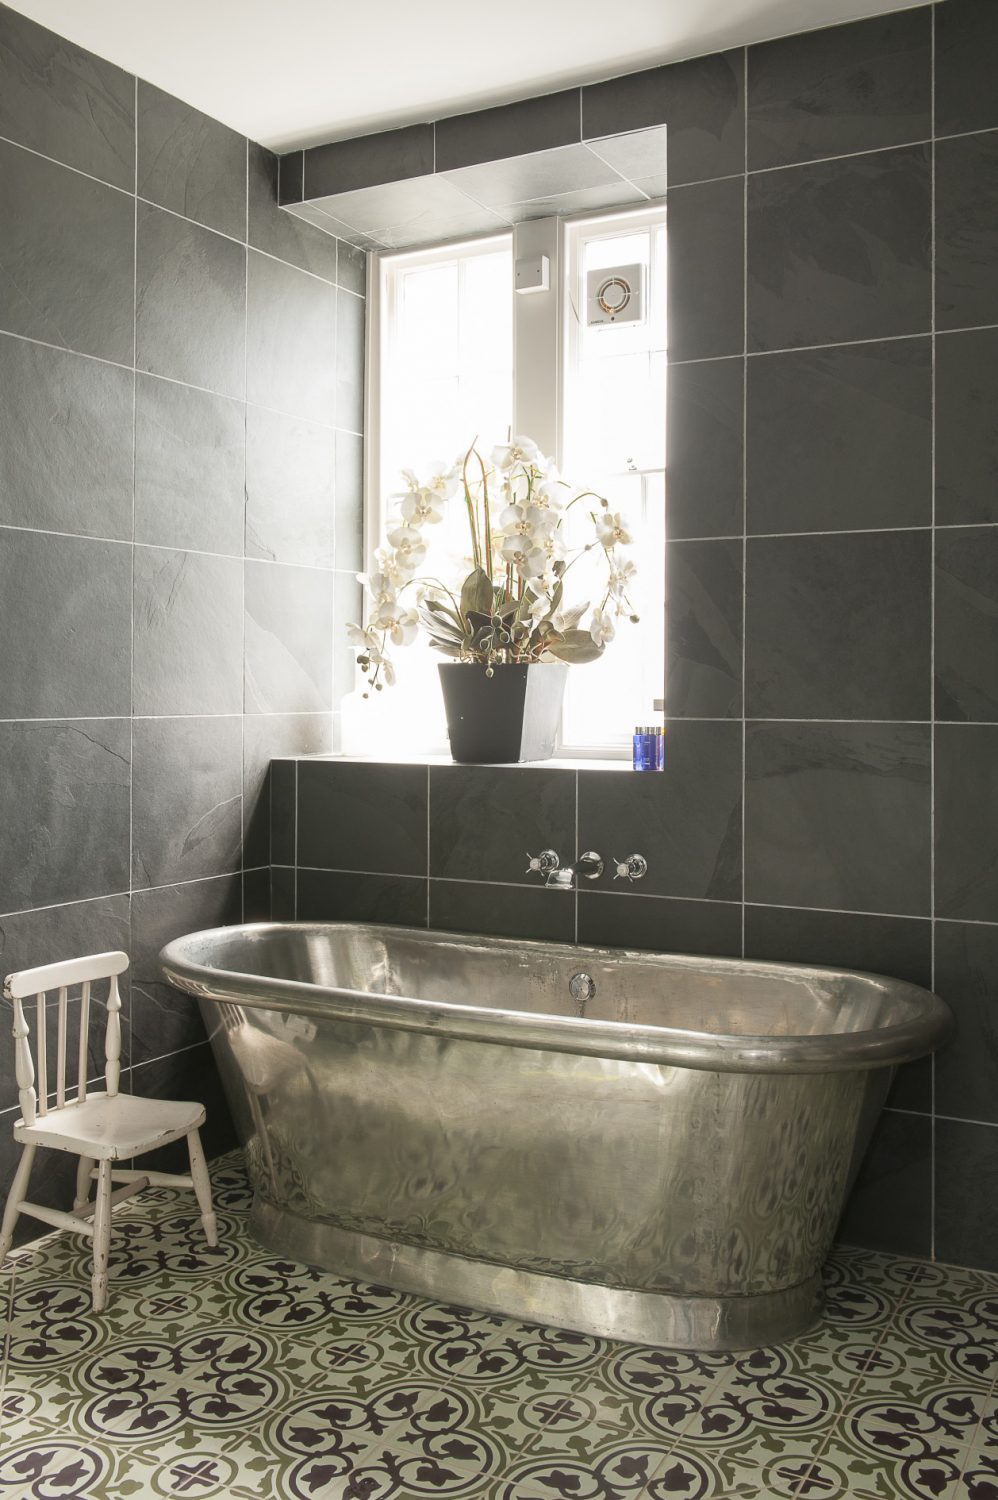 Centrepiece of the en suite bathroom is a glorious William Holland brass bath